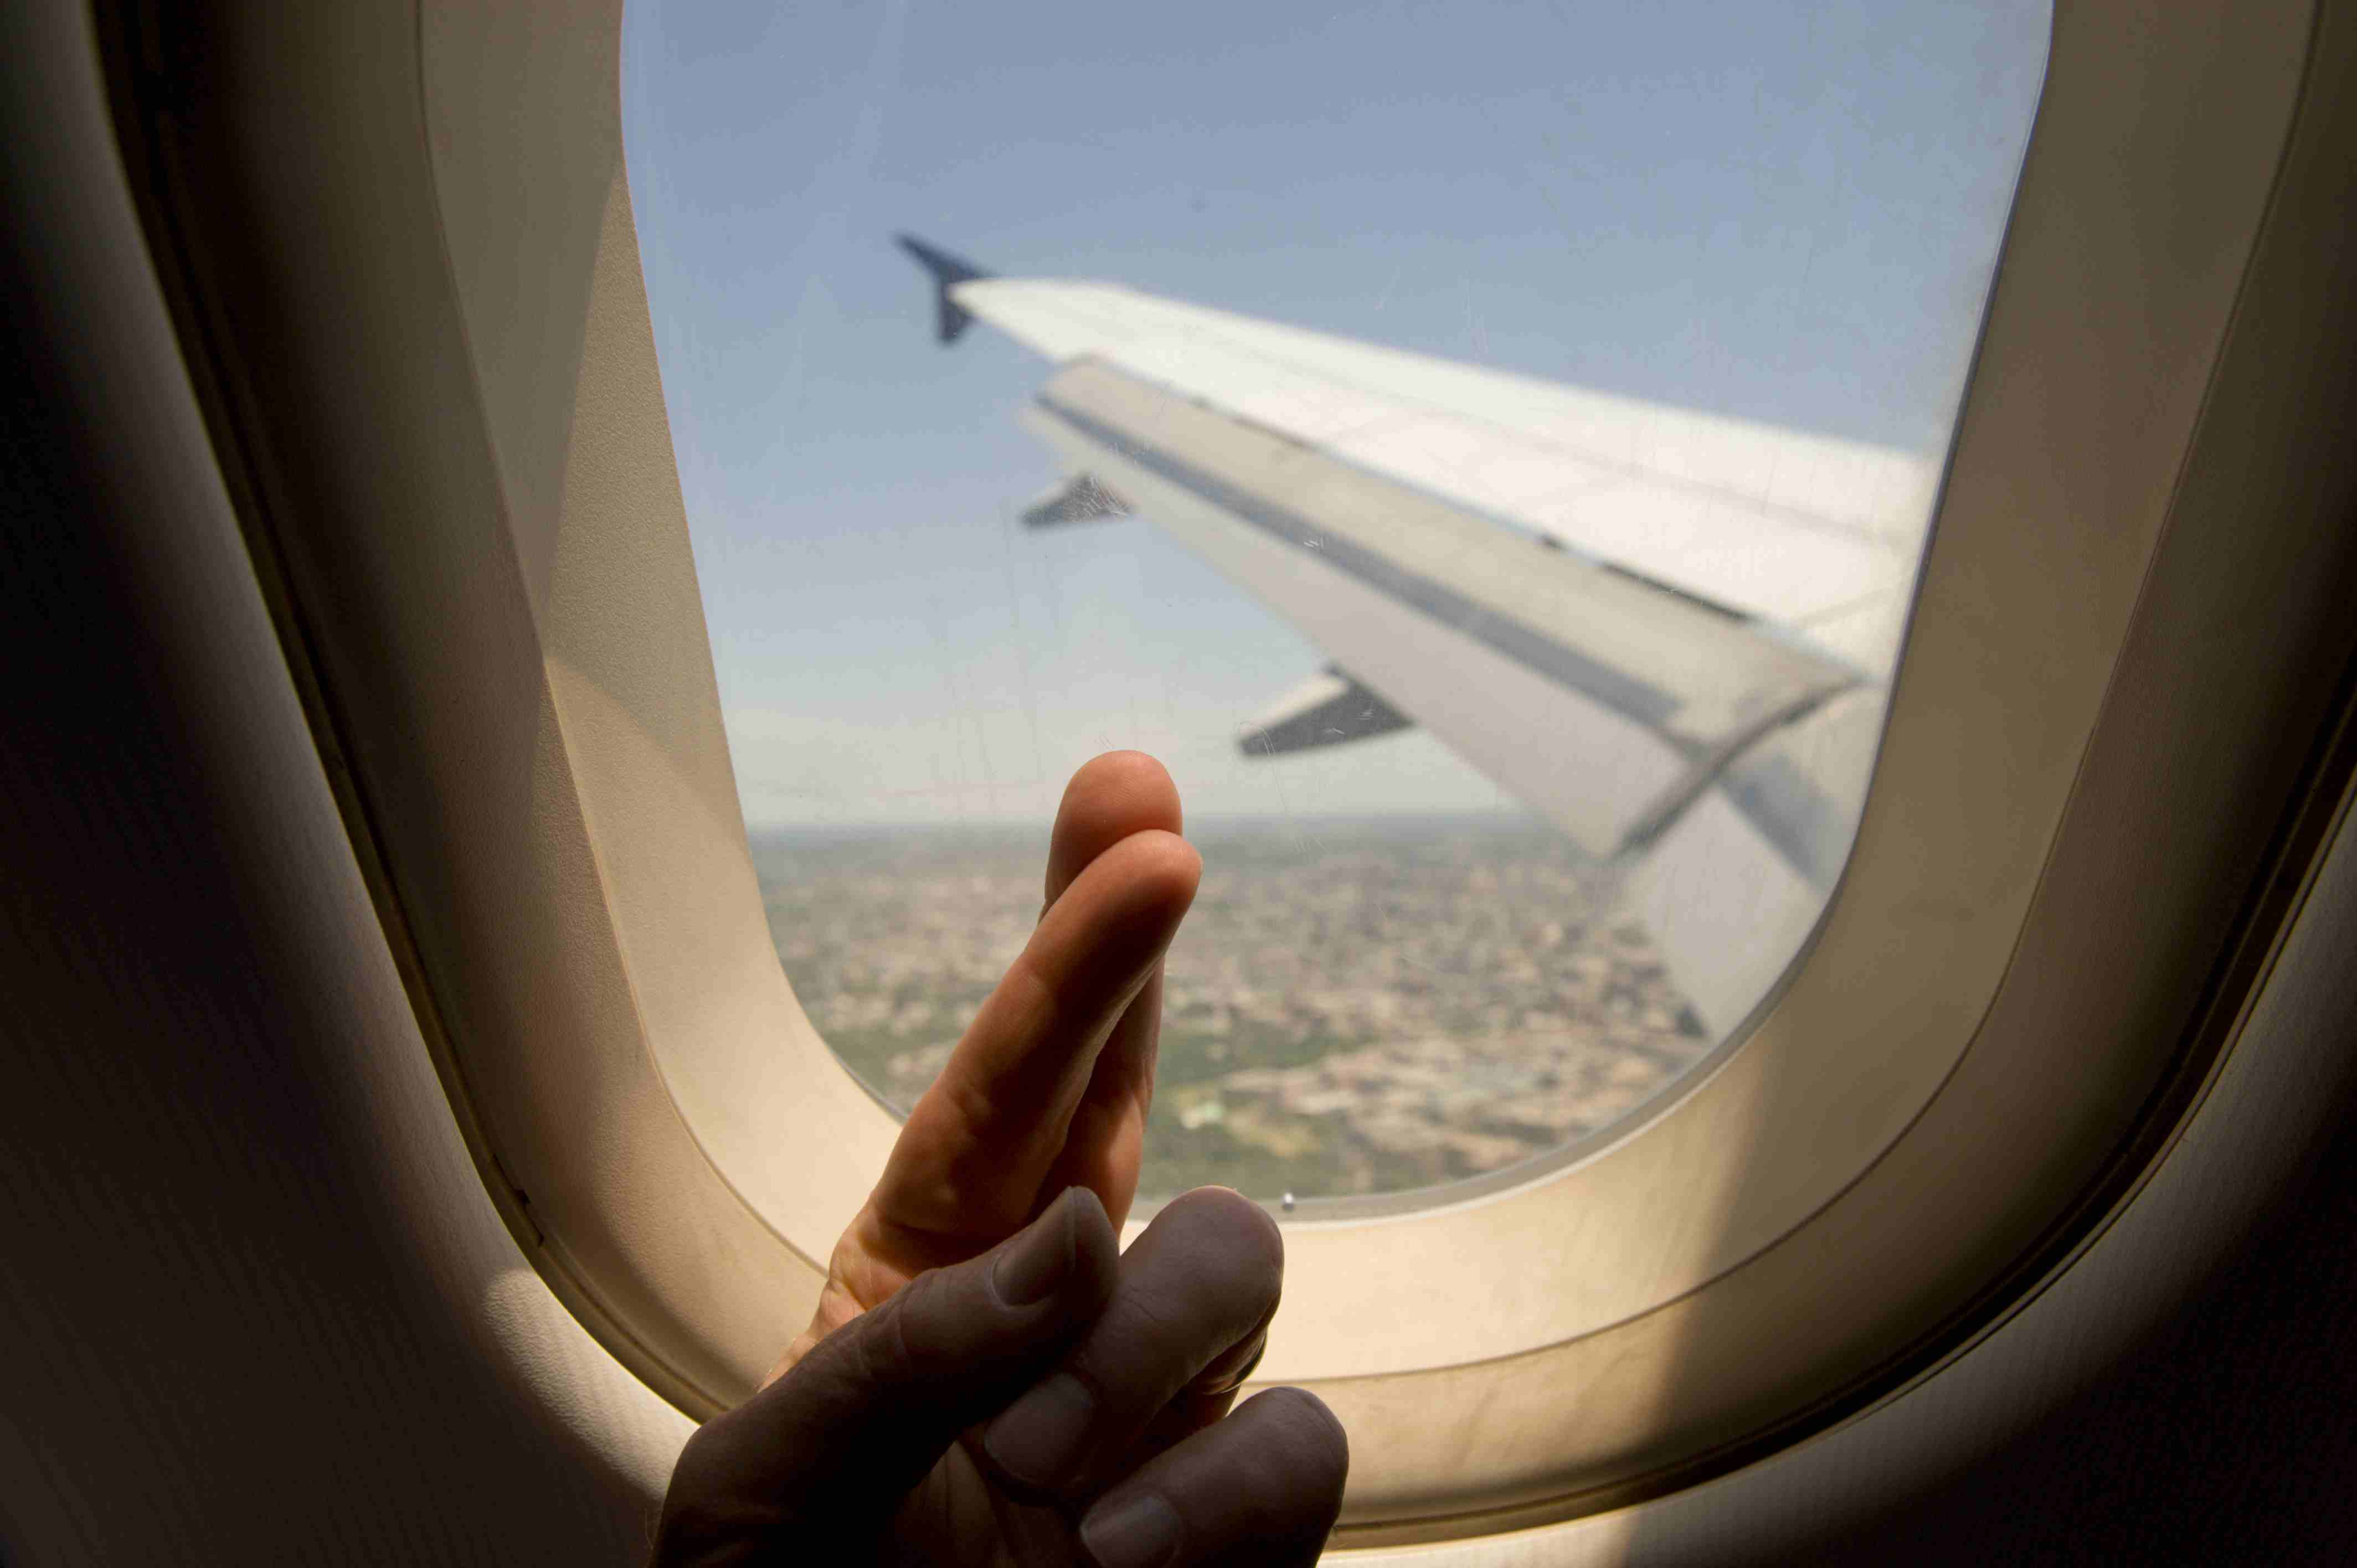 Male passenger crossing fingers while looking out an airplane window